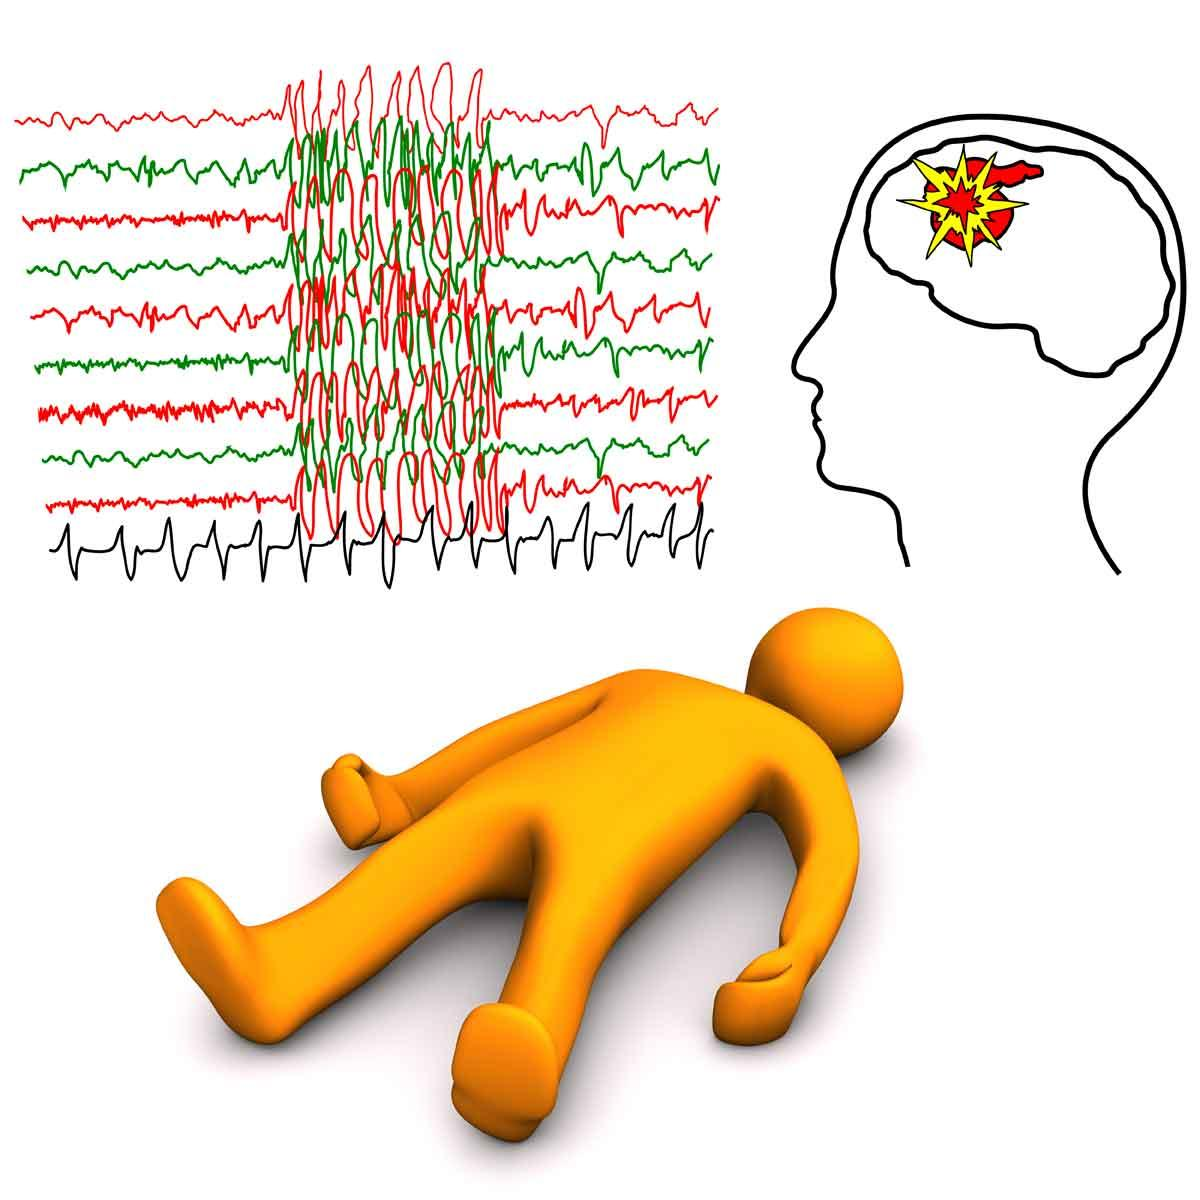 Risk Factors for Developing Epilepsy